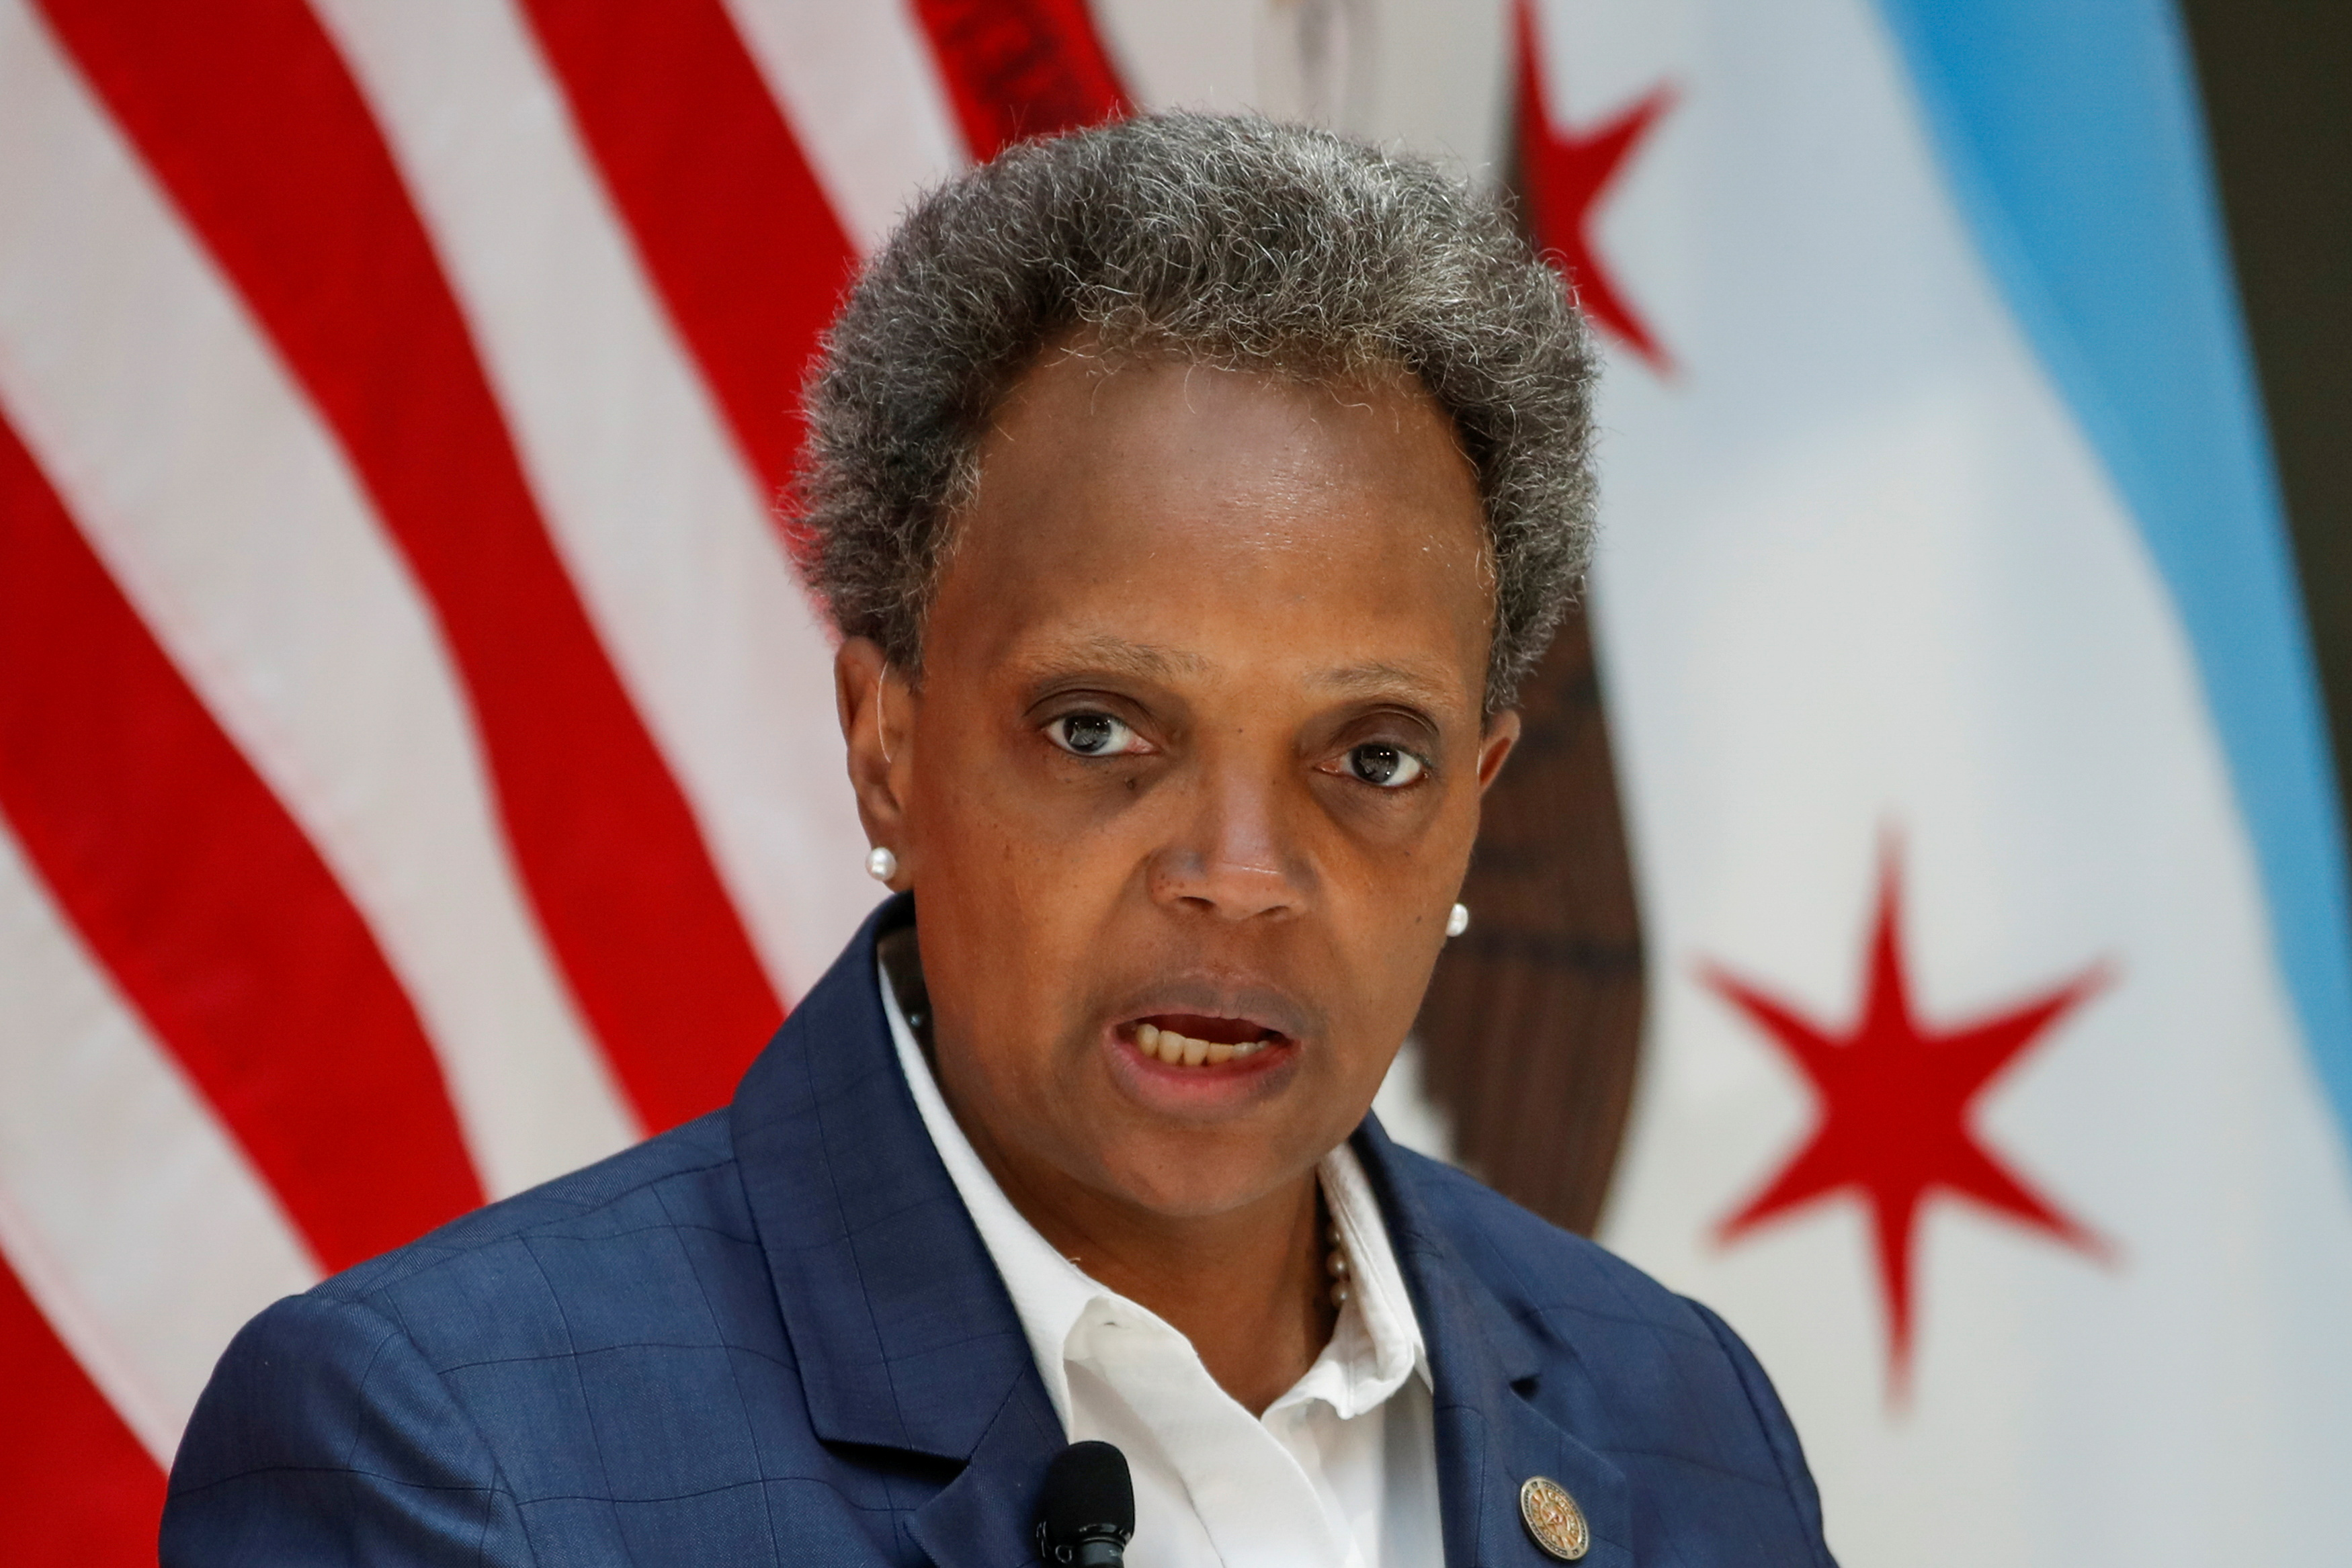 Chicago's Mayor Lori Lightfoot speaks during a science initiative event at the University of Chicago in Chicago, Illinois, U.S. July 23, 2020. REUTERS/Kamil Krzaczynski/File Photo